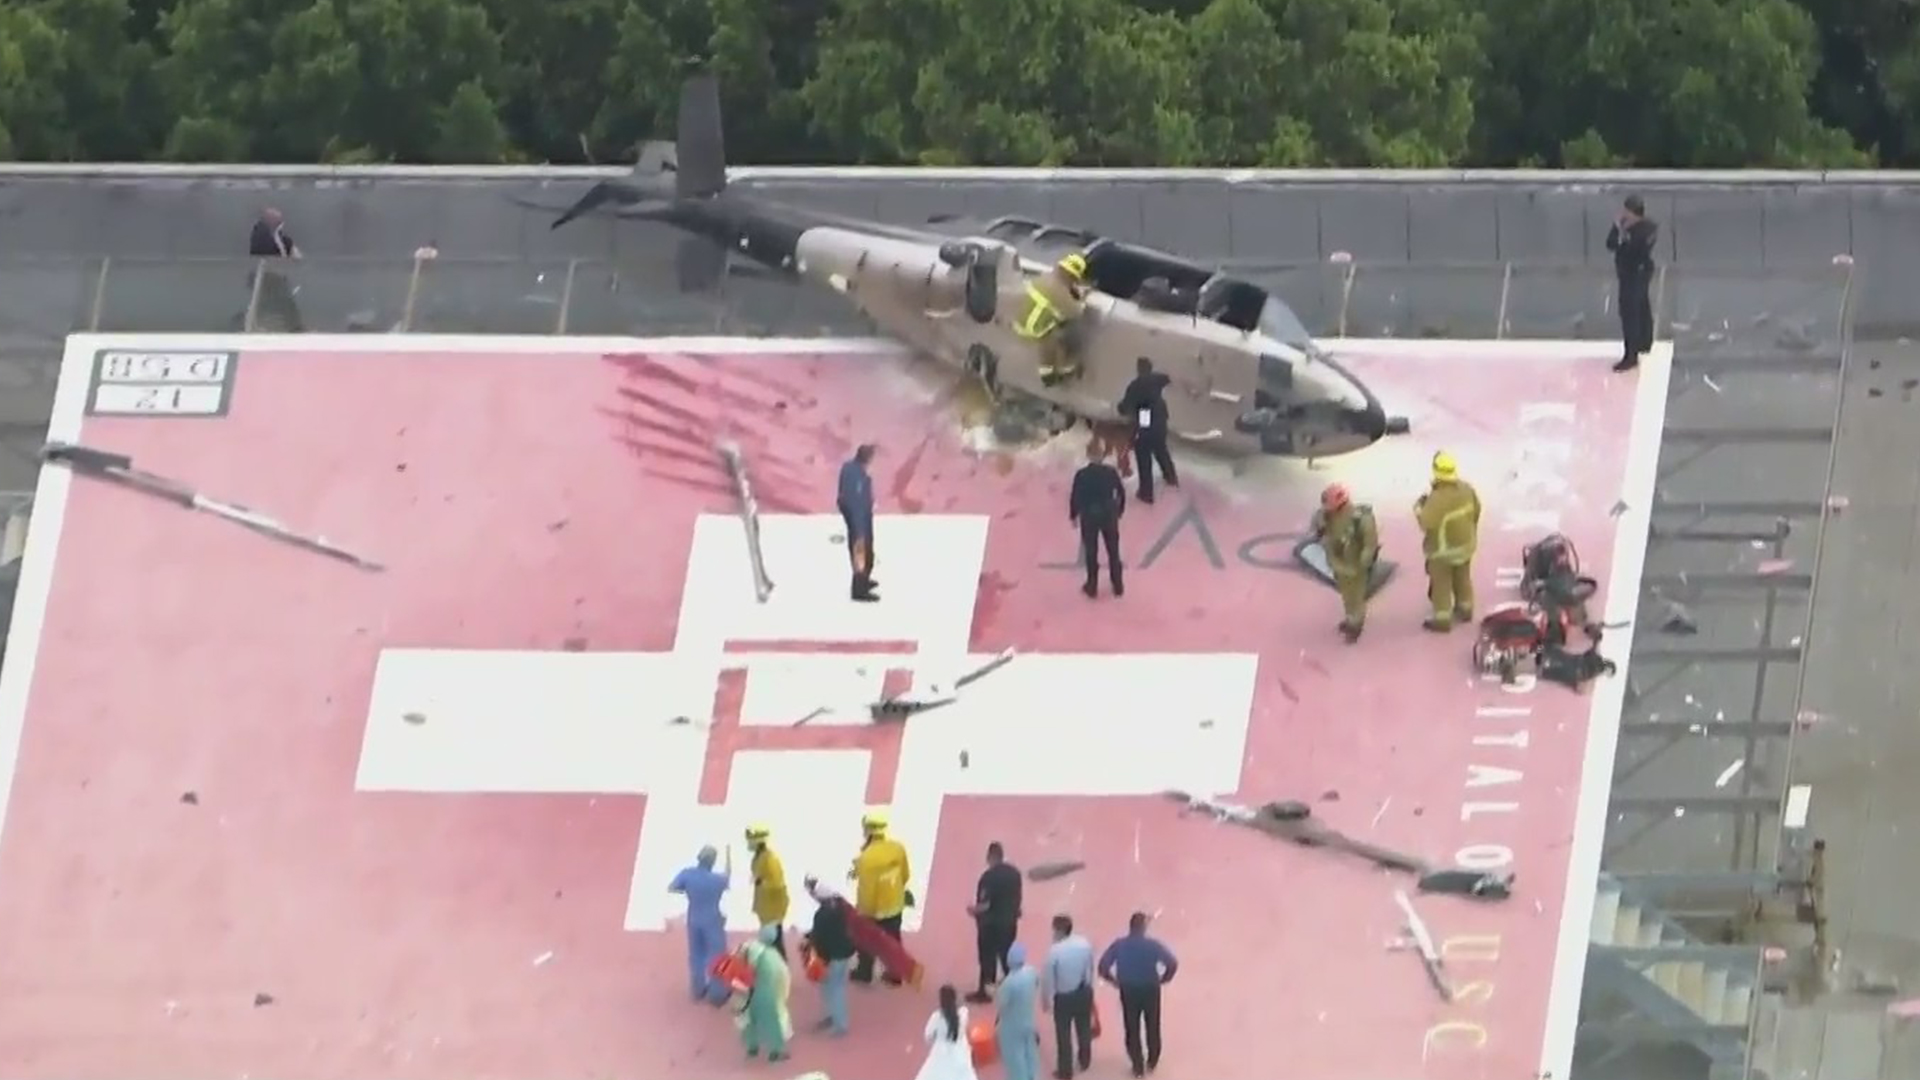 A helicopter sits on a helipad on the rooftop of Keck Hospital of USC in Boyle Heights moments after crash landing on Nov. 6, 2020. (KTLA)